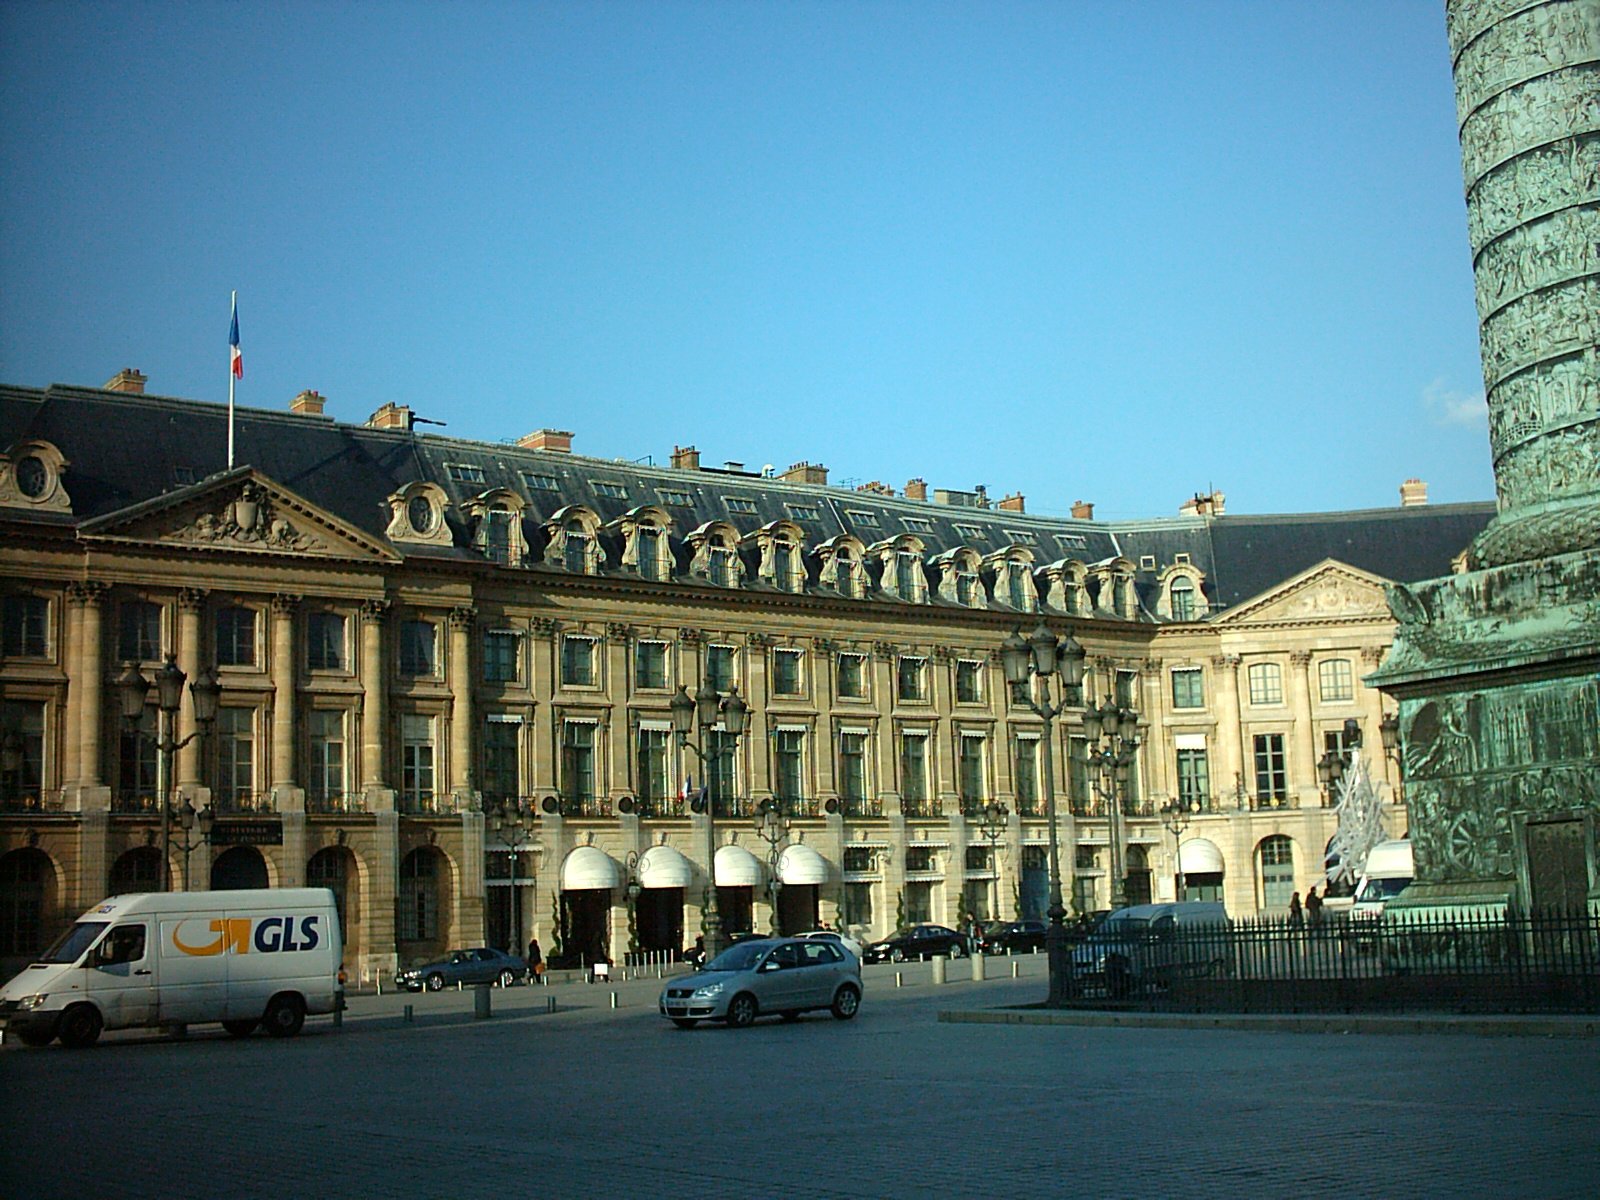 The Ritz Hotel on Place Vendome in Paris